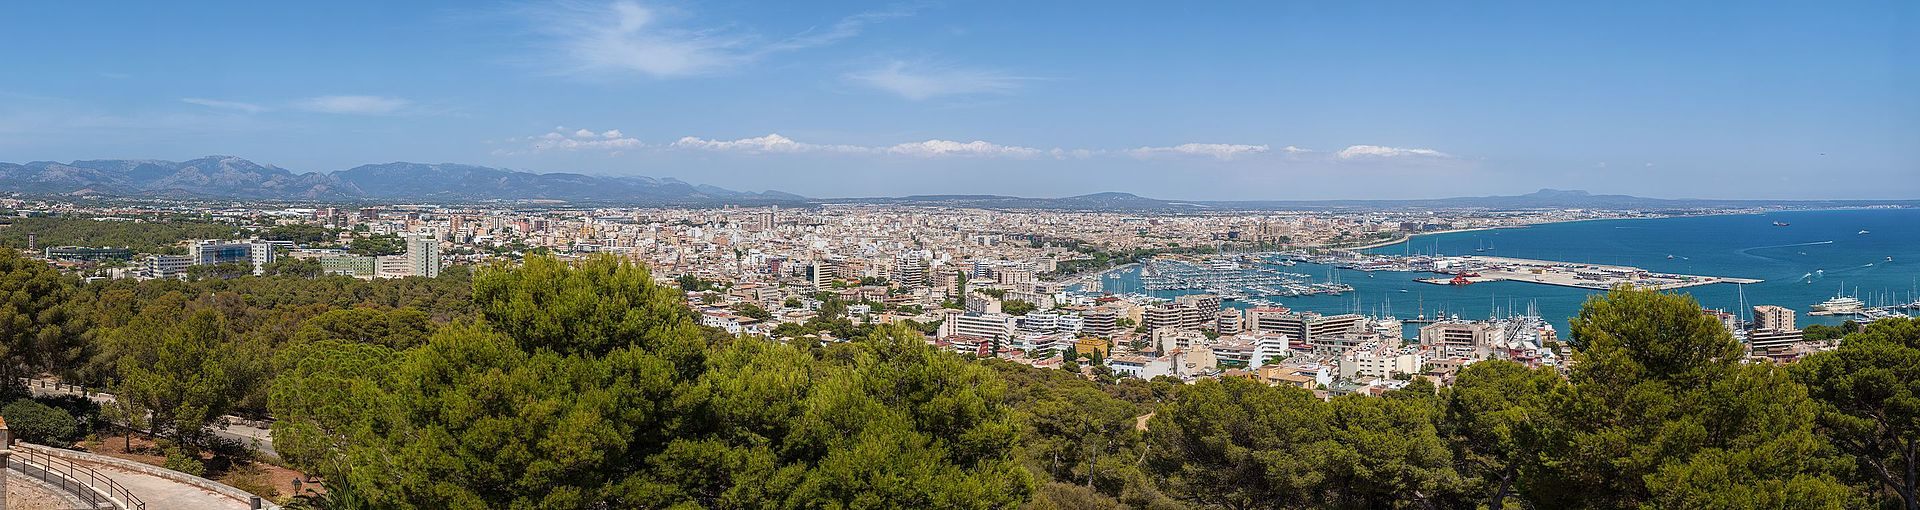 Palma from Bellver Castle